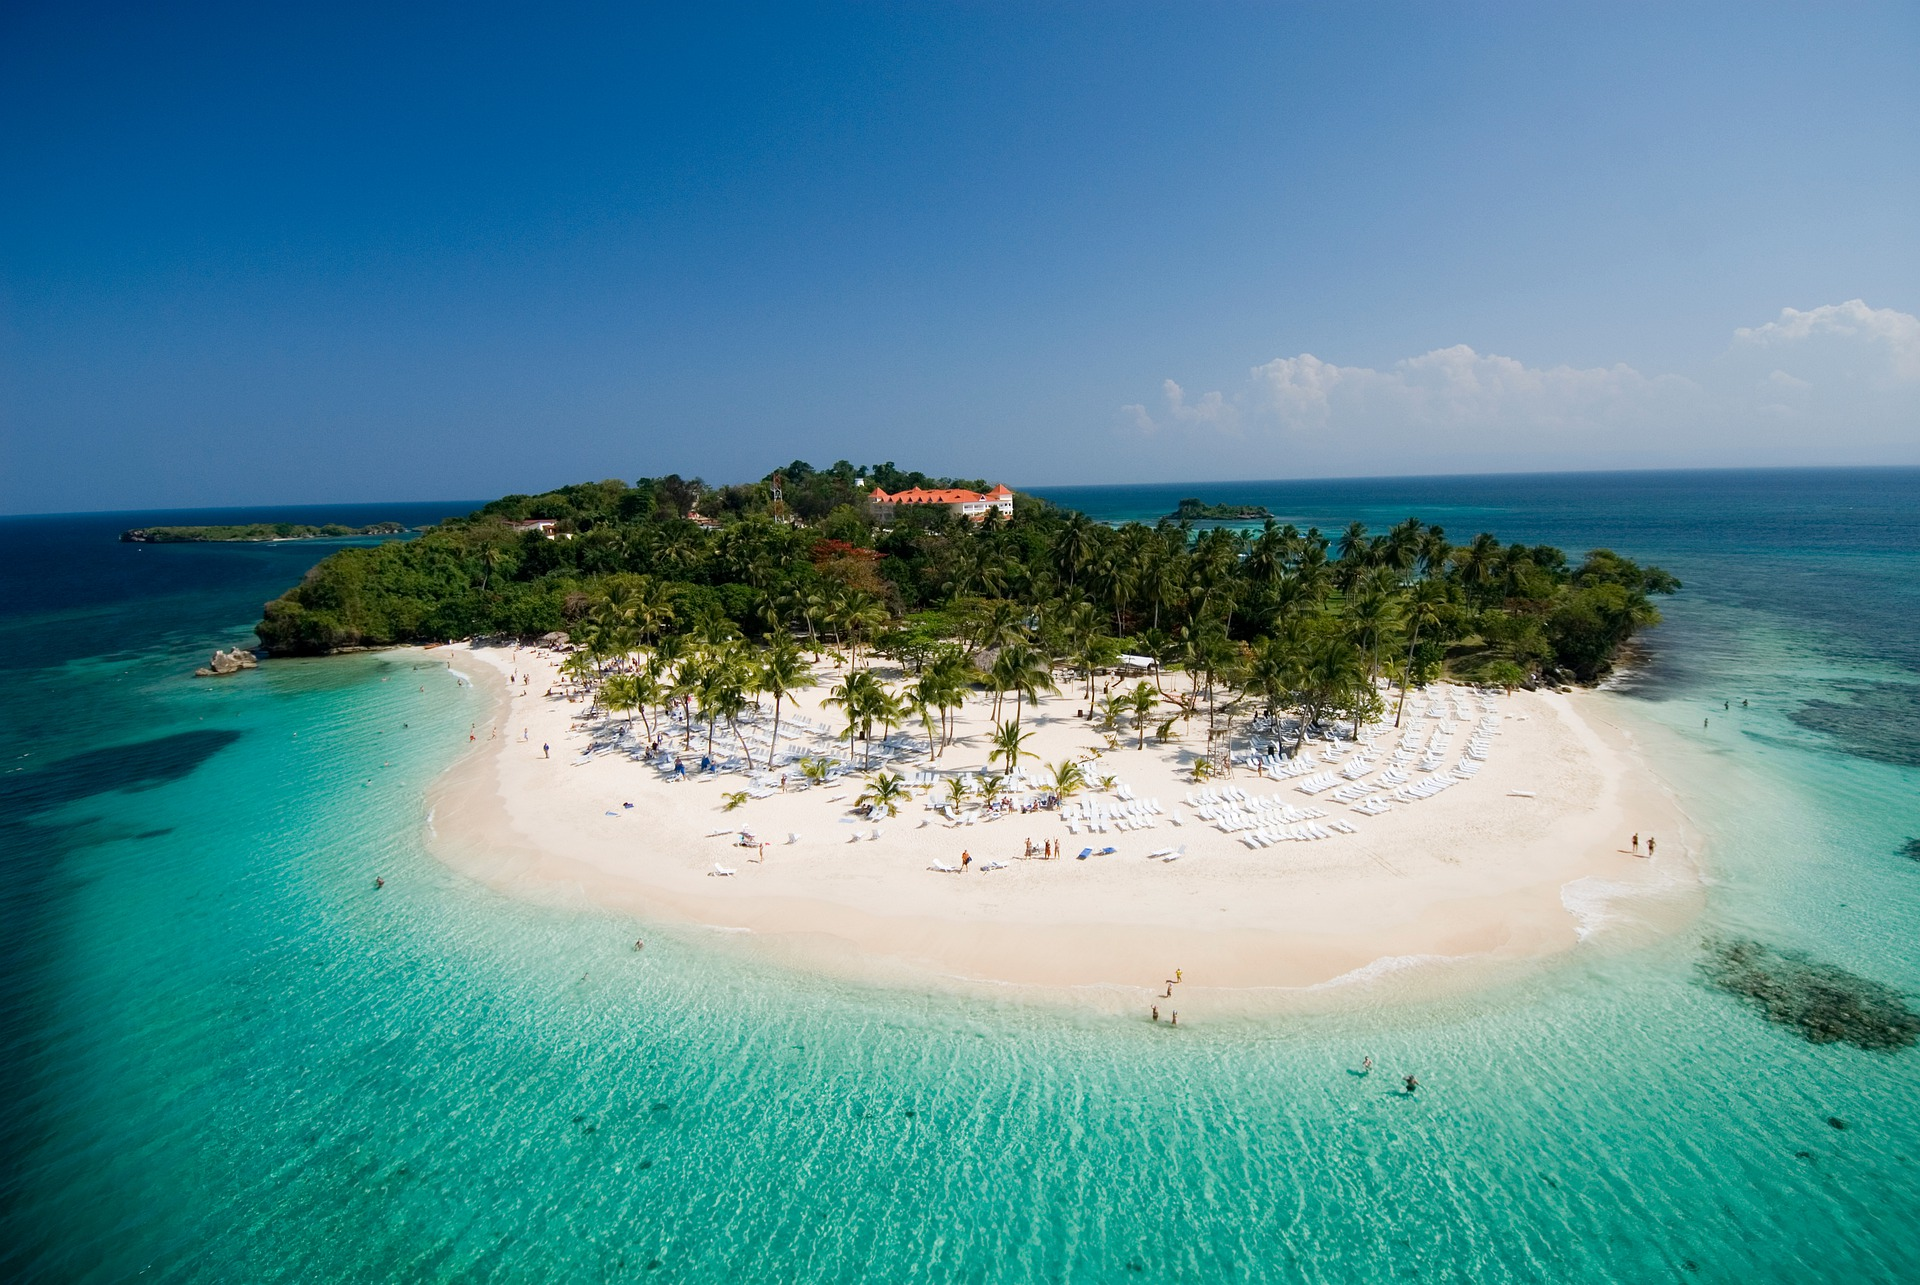 dominican republic what to pack, punta cana packing list, dominican republic packing list